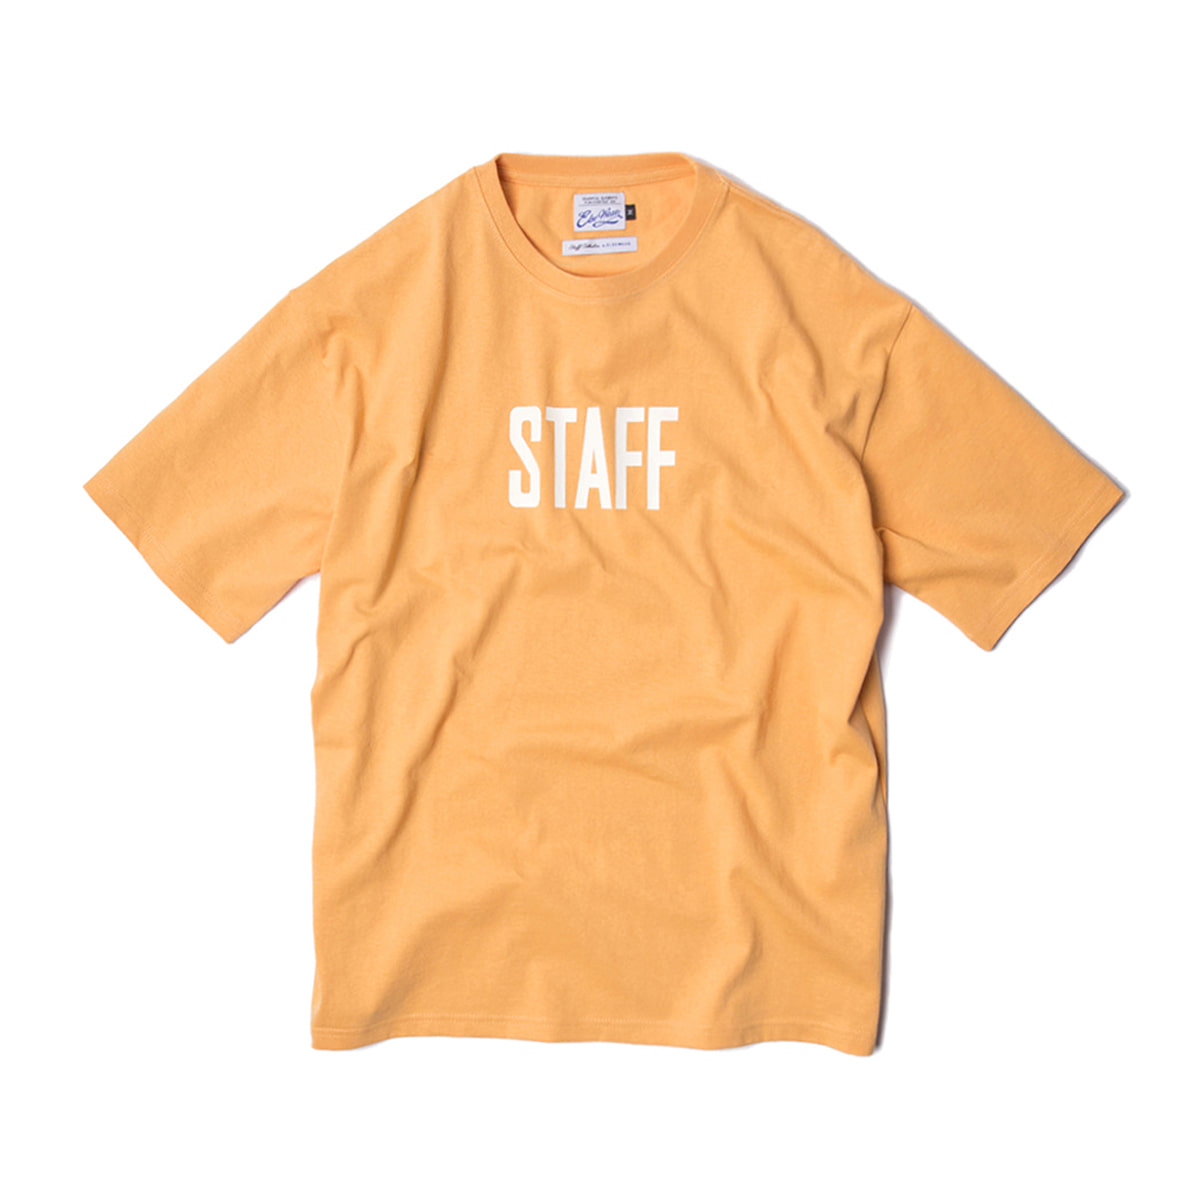 [ELSEWEAR] ELSEWEAR STAFF COLLECTION SS TEE 'GRAPEFRUIT'